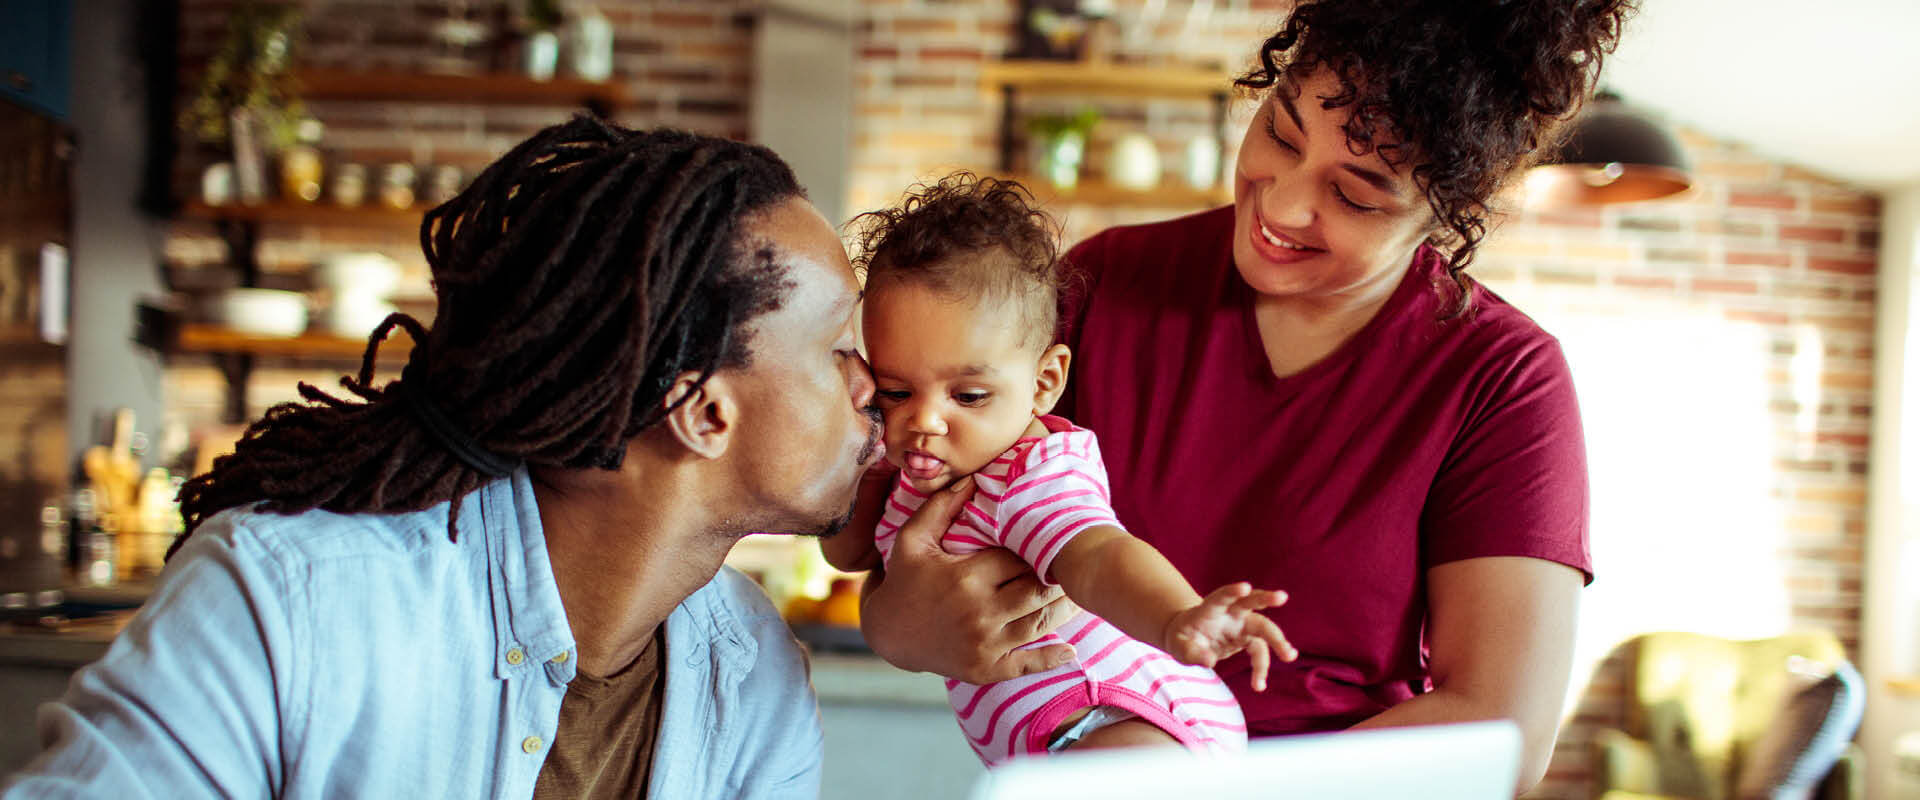 Diverse couple at home. Dad kisses daughter